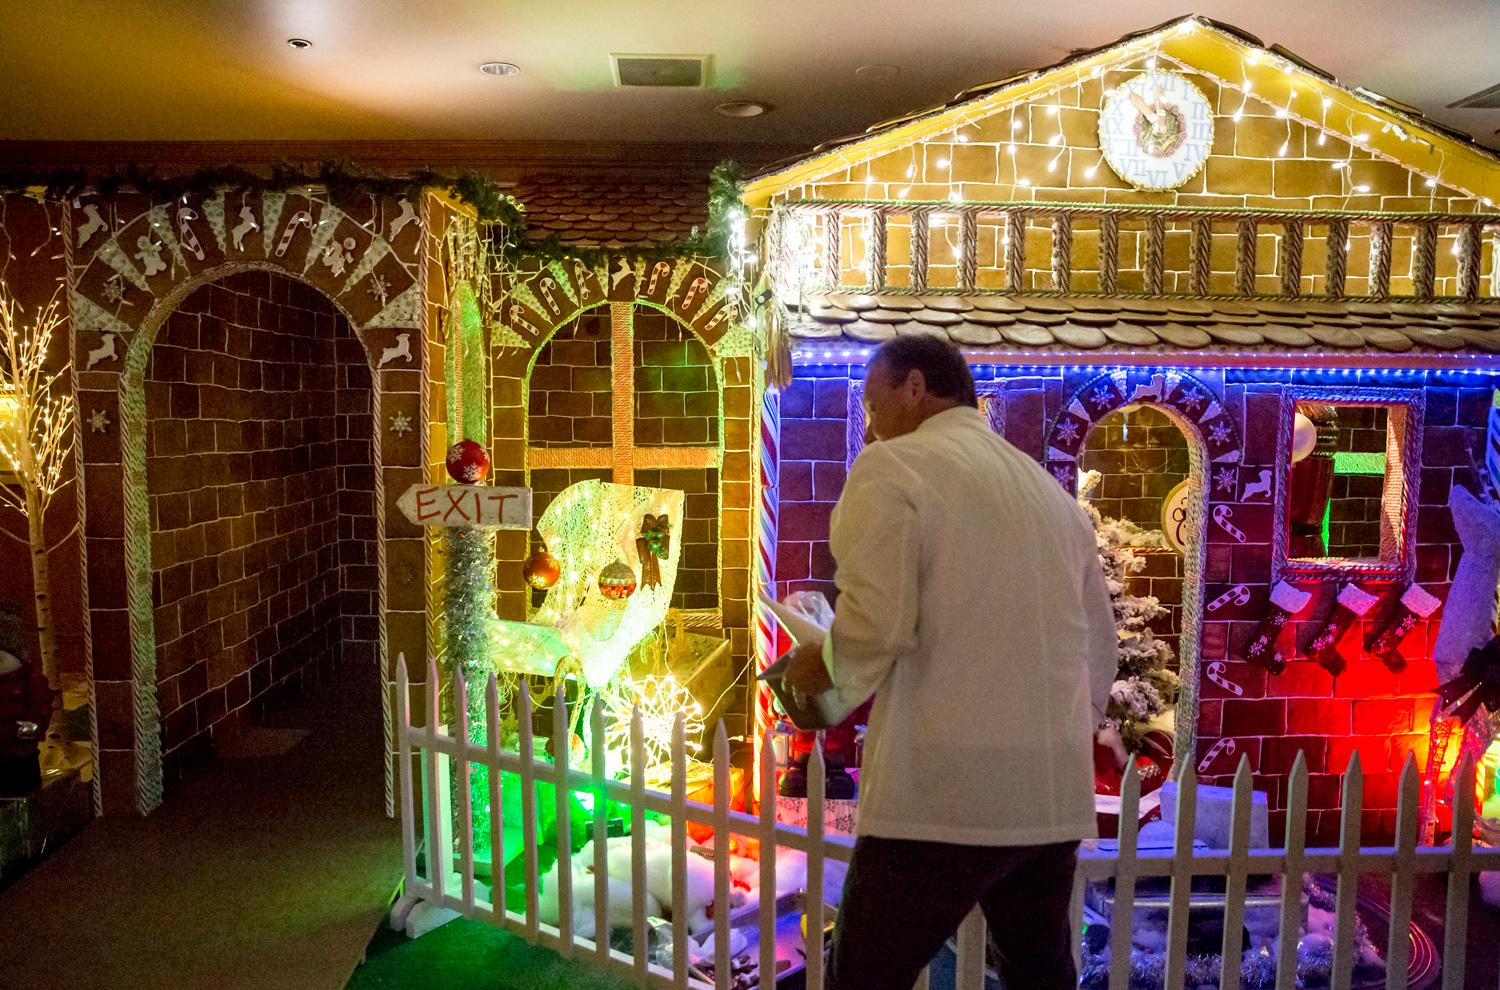 Talk about a dream home! Well - for a person with a sweet tooth that is!The creation of this colossal Gingerbread house has been going on since August and took eight engineers, 15 culinary stars, and hundreds of helping hands. The recipe looks like this: 960 pounds of flour, 20 gallons of milk, 75 gallons of icing, 80 pounds of molasses, 80 pounds of butter, 3 pounds of cinnamon, 3 pounds of nutmeg, 170 pounds of brown sugar, 3 pounds of anise, and 3 pounds of clove! Phew. It gets better... The finished product has 4,100 Gingerbread tiles, 2,500 candy canes, 1,000 spearmints, 50 pounds of crushed candy and 144 feet of candy ropes. I think we just got a sugar contact high. If you haven't ventured down there, this gingerbread house in a must-see, folks! (Image: Sy Bean / Seattle Refined).